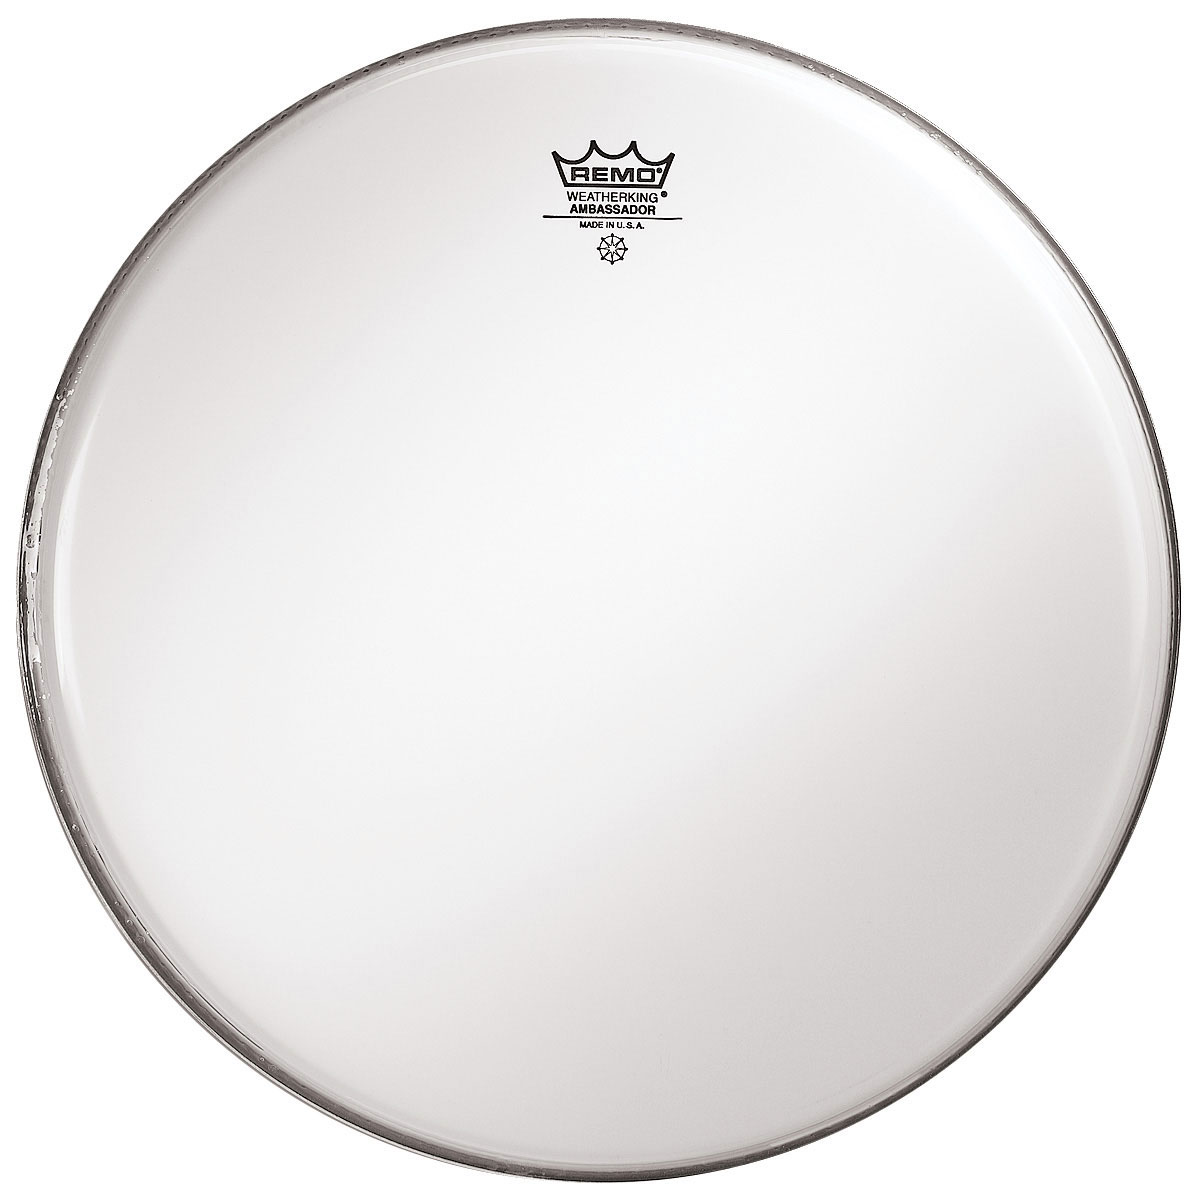 "Remo 10"" Ambassador Smooth White Drum Head"